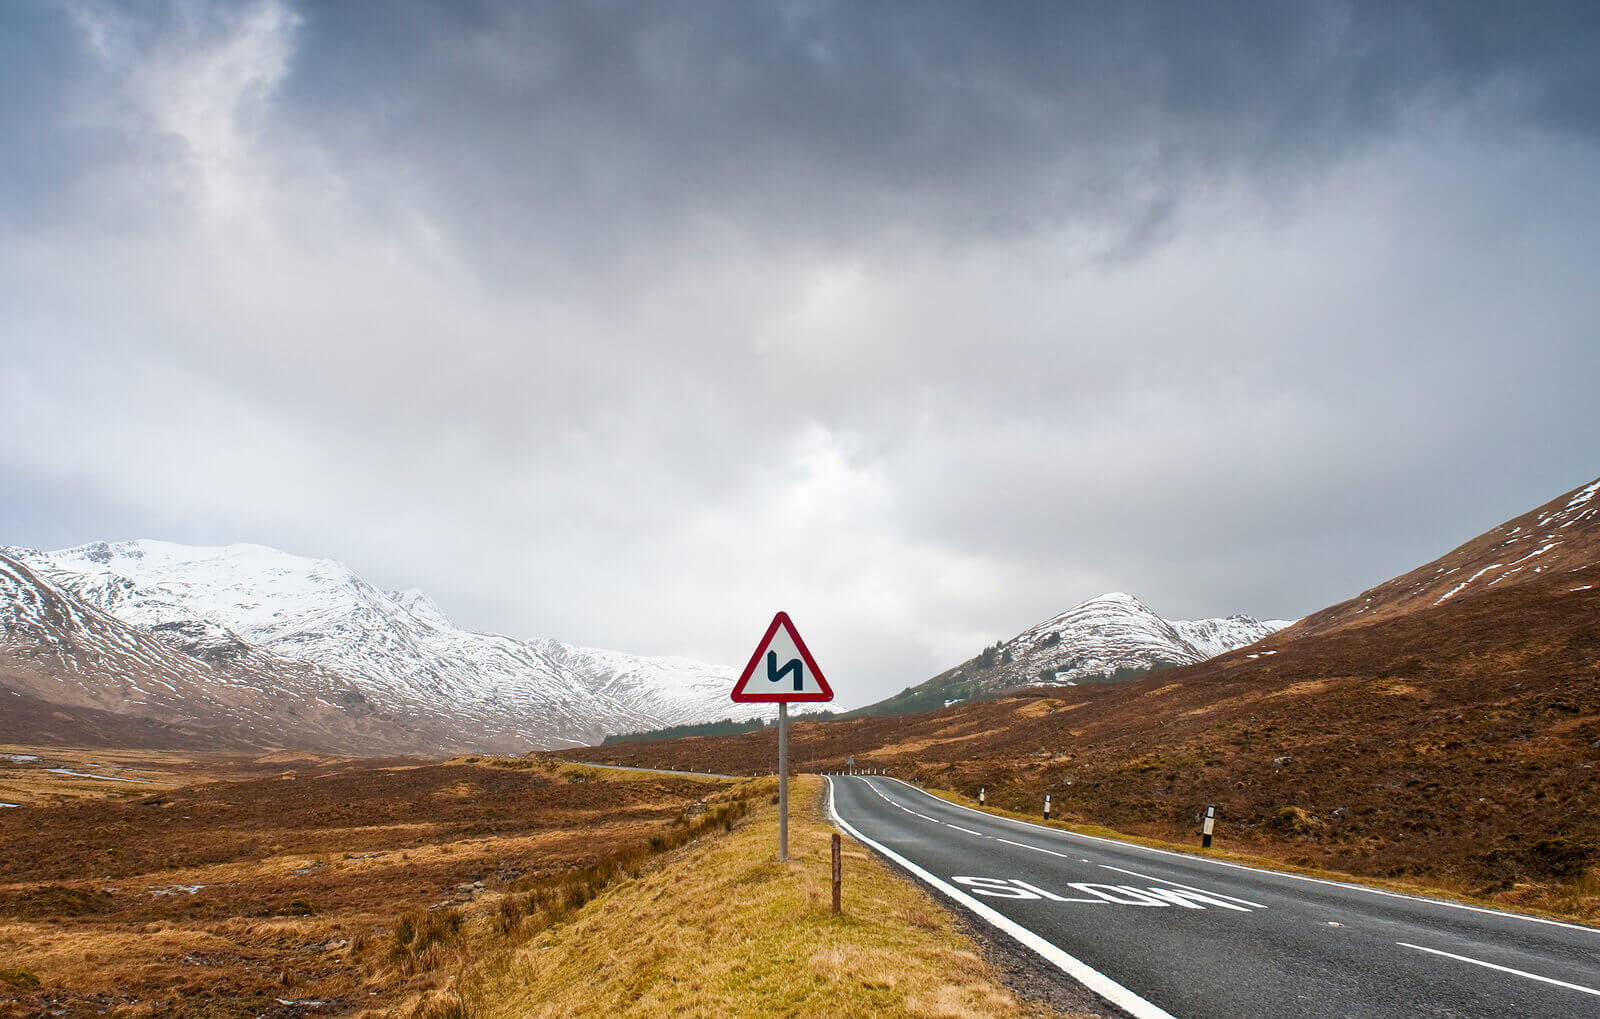 A82 road heading into Scottish mountains and highland countryside, perfect scenic route